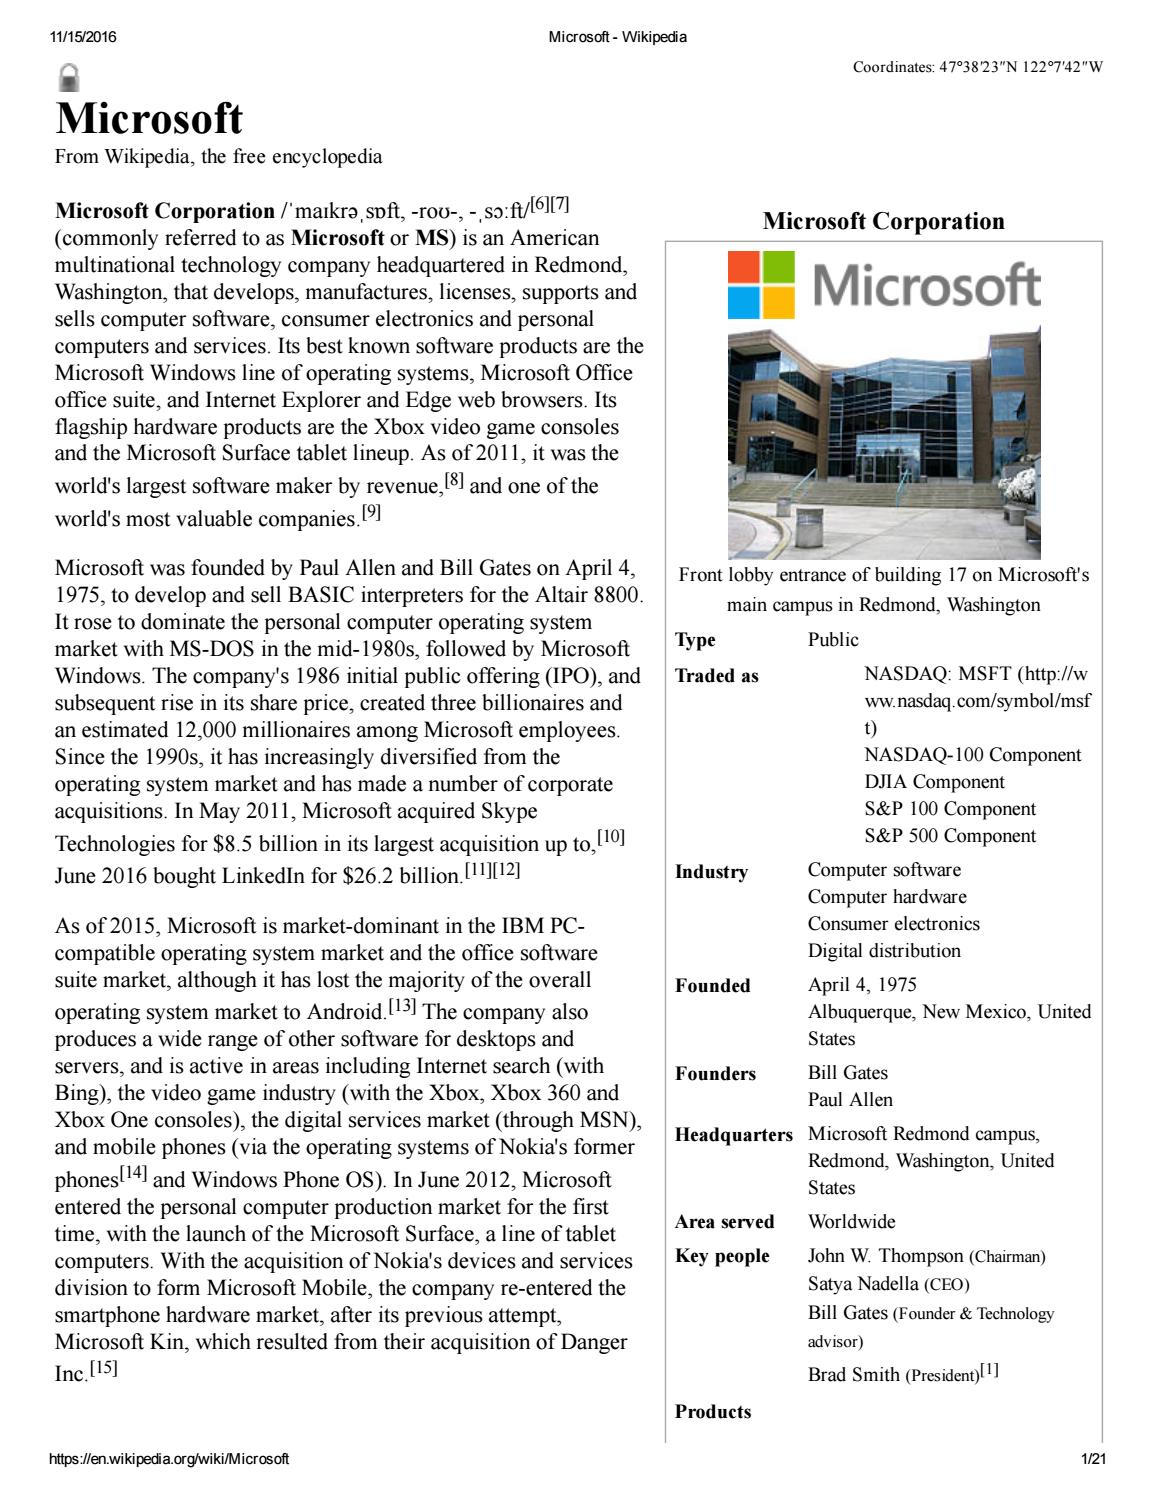 Microsoft Corporation(commonly Called Microsoft Or MS) Can